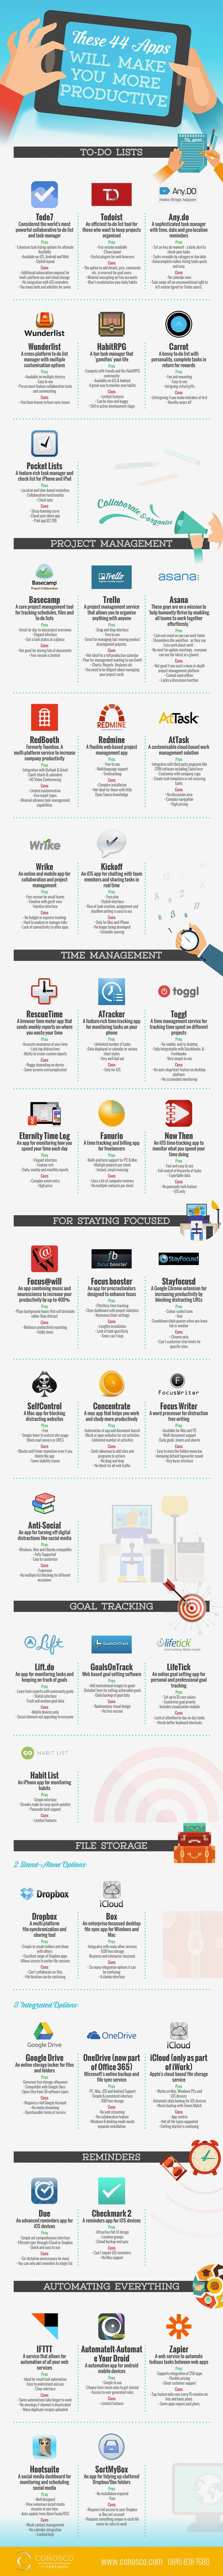 44 Apps That Turn Your Smartphone Into a Productivity Powerhouse (Infographic)